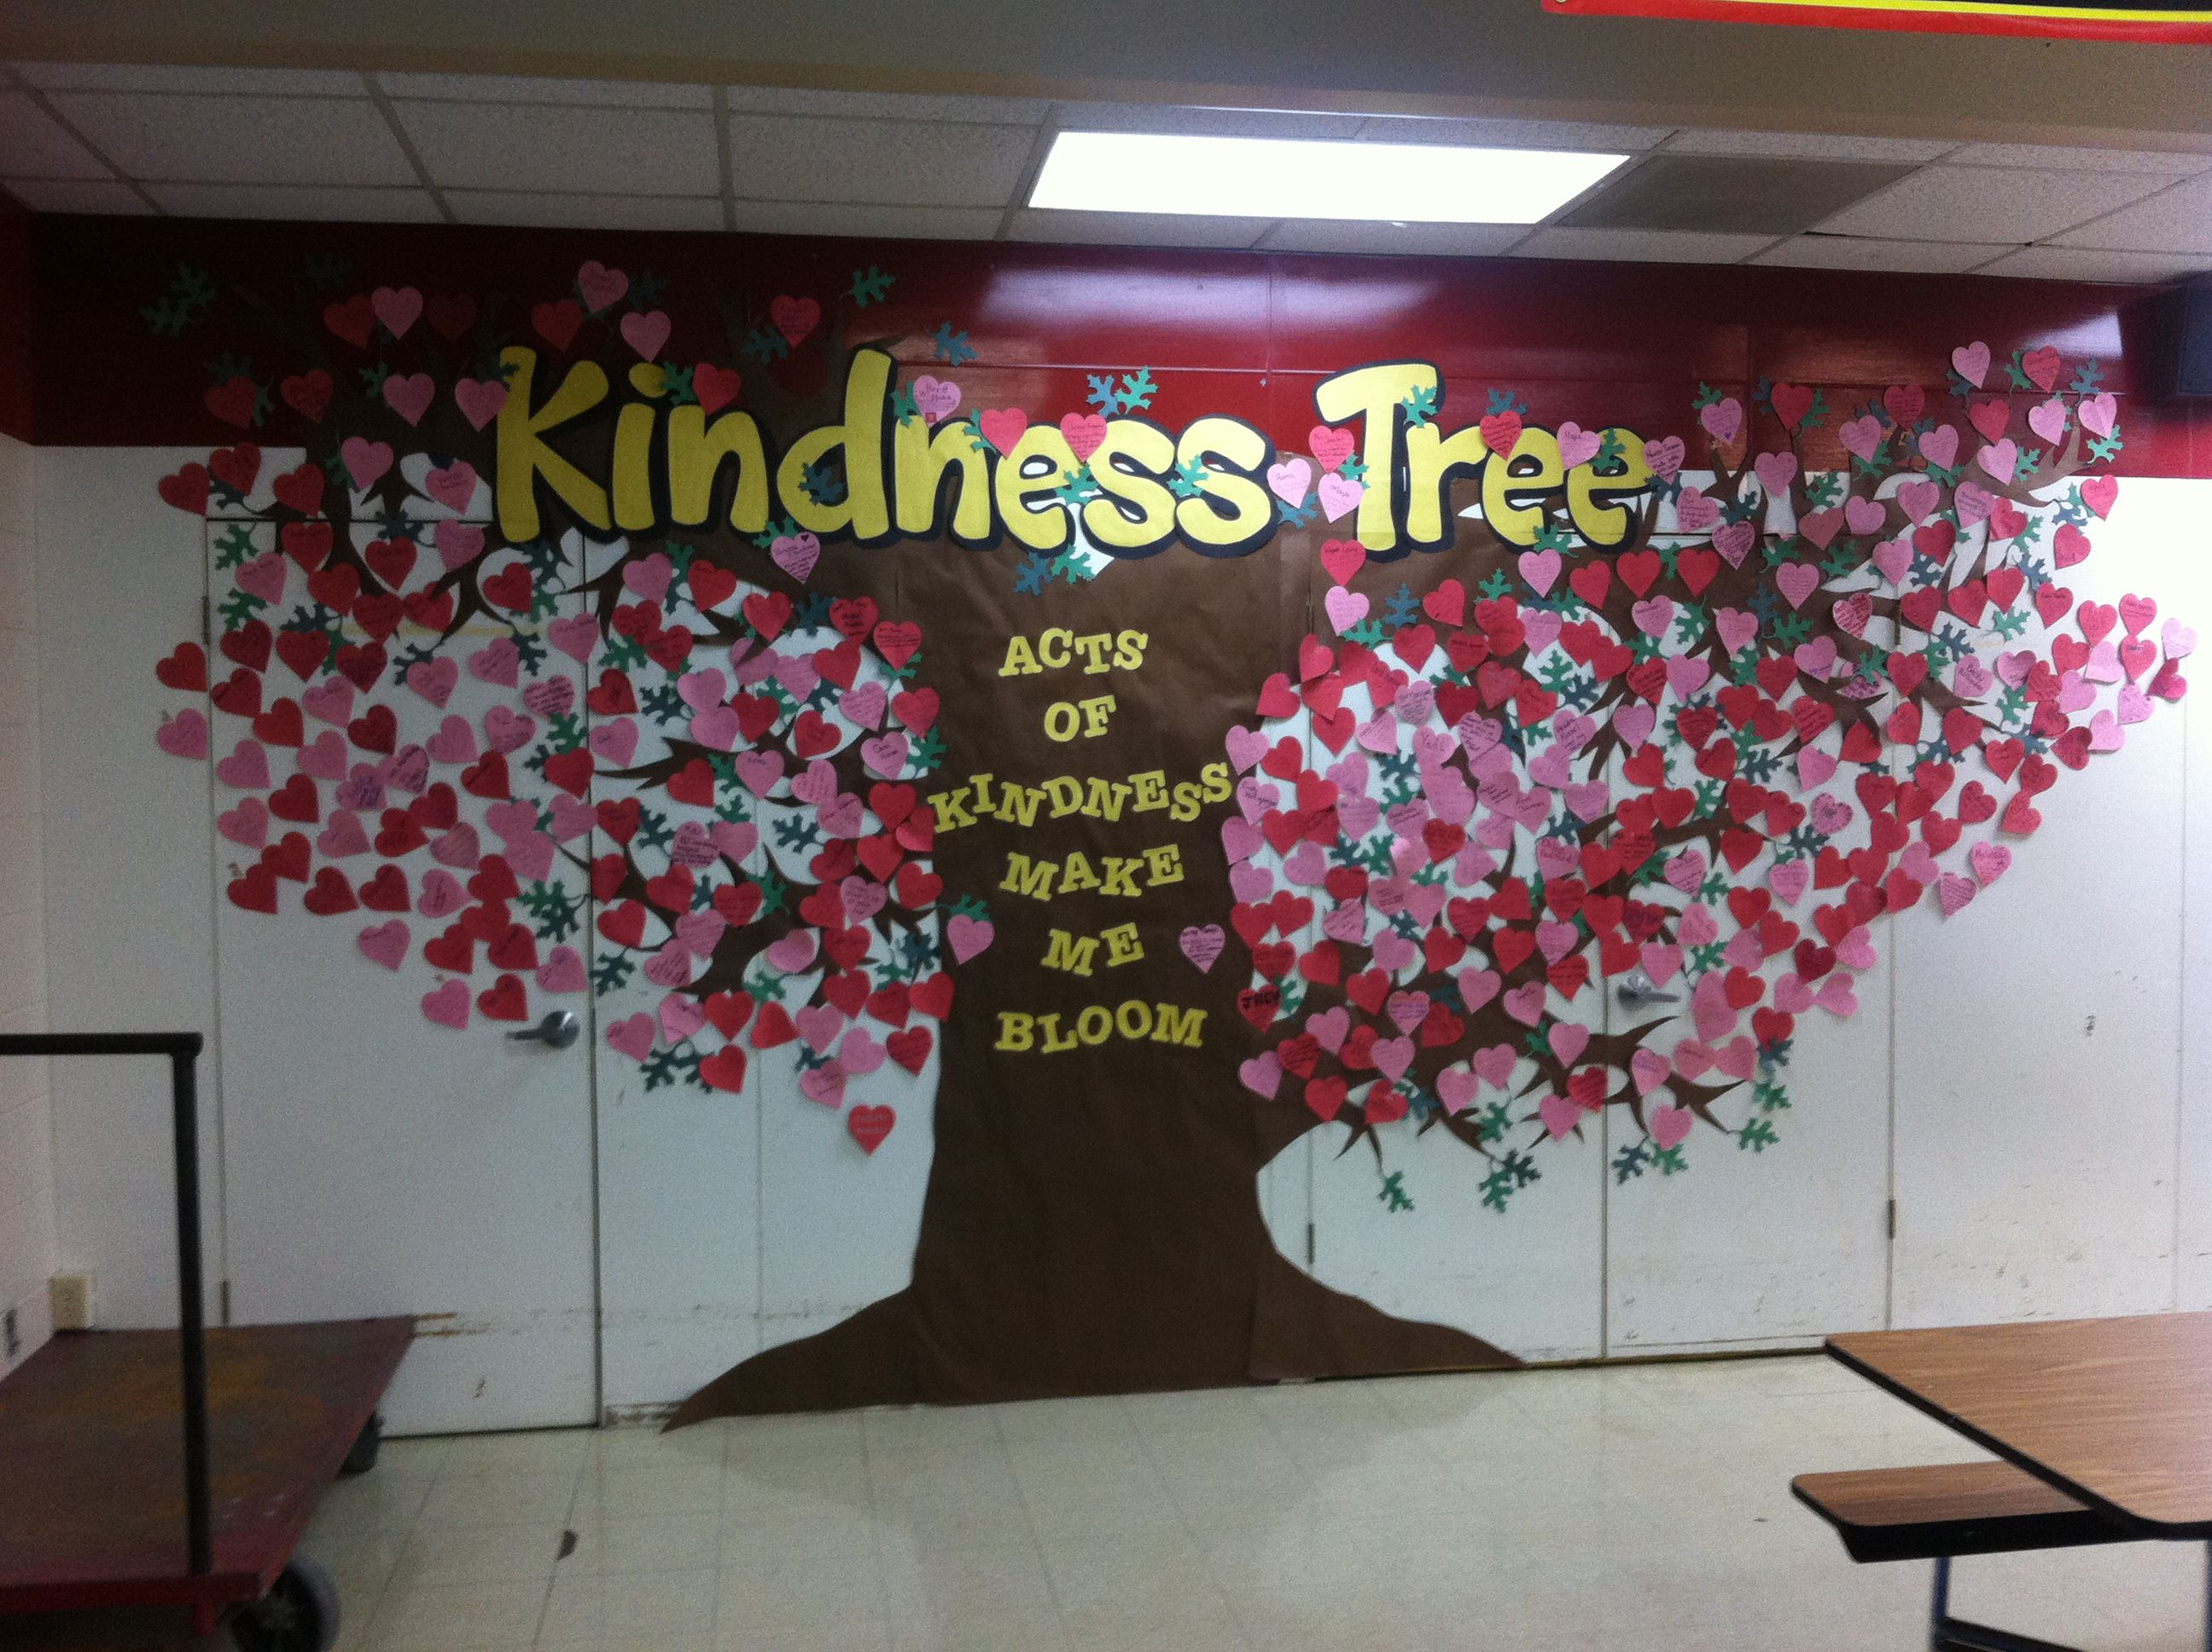 Essay on kindness can make a difference